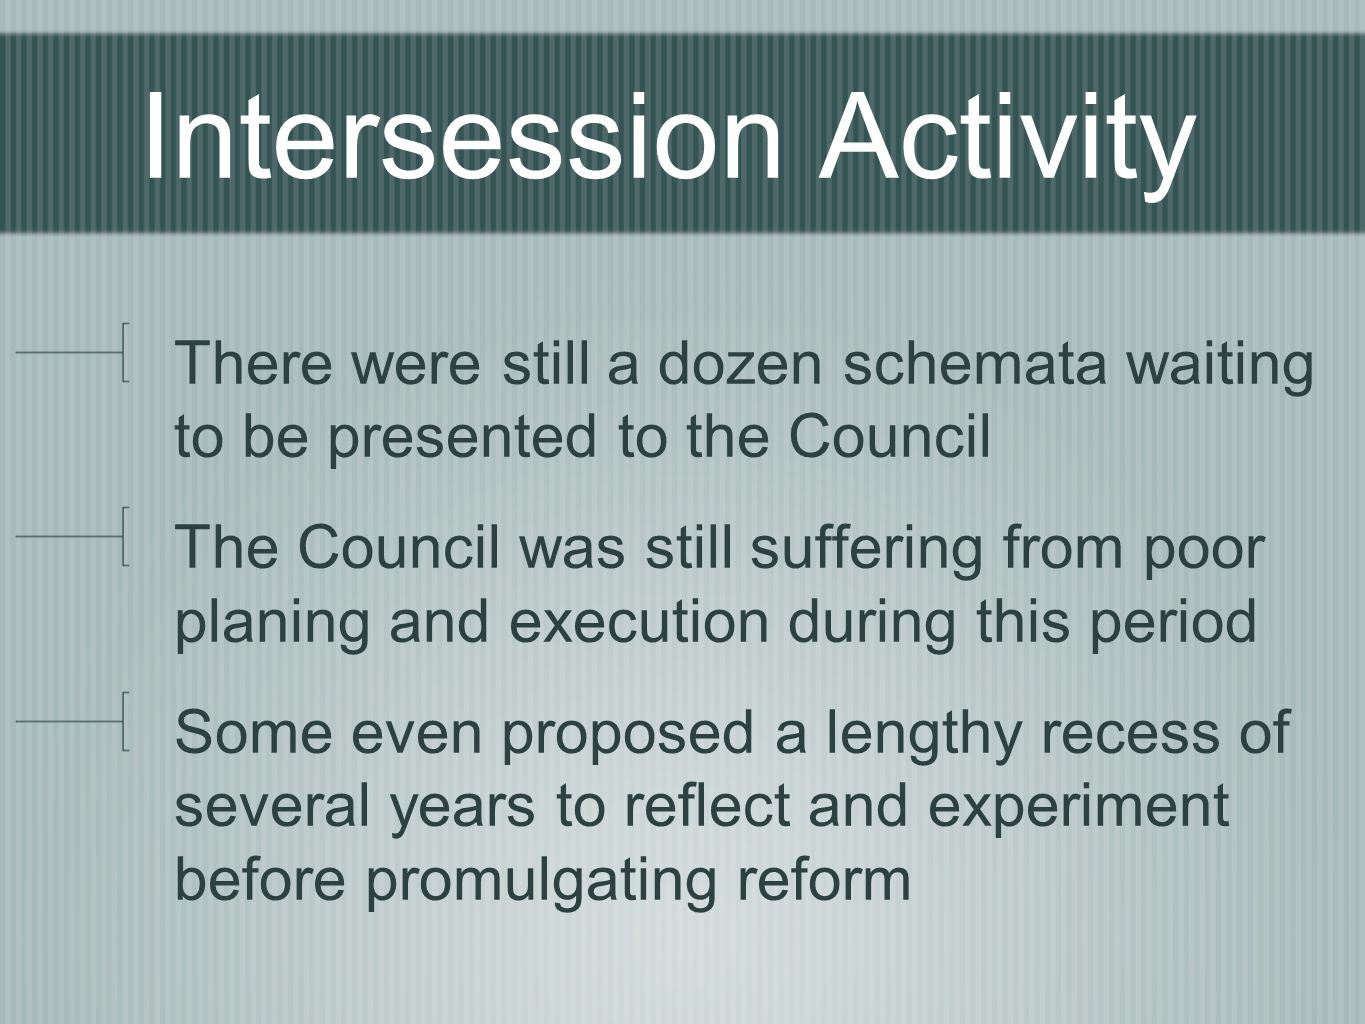 Intersession Activity There were still a dozen schemata waiting to be presented to the Council The Council was still suffering from poor planing and e